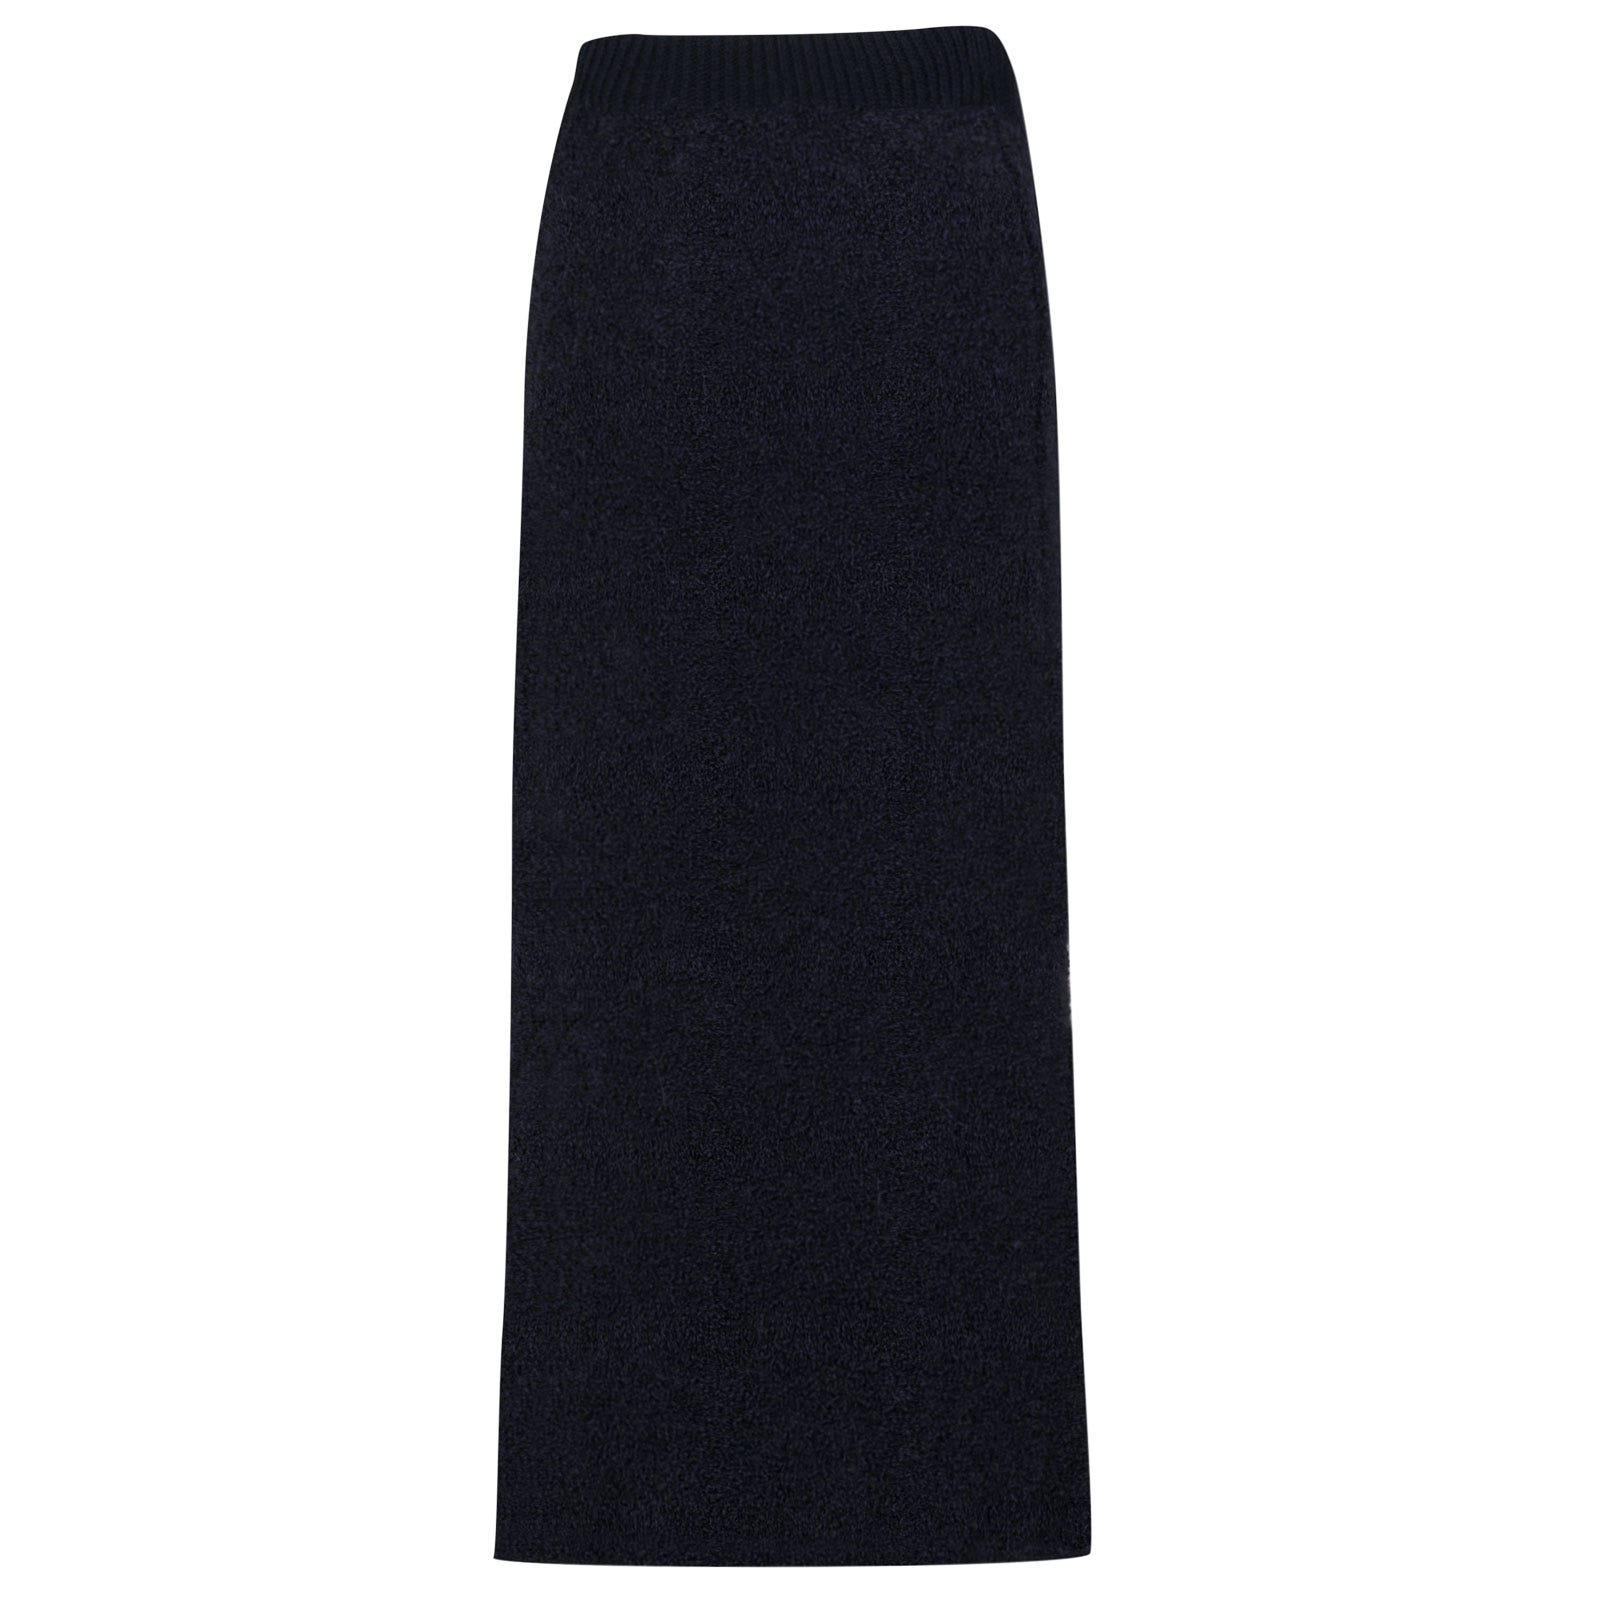 John Smedley Orford Alpaca & Wool Skirt in Midnight-M